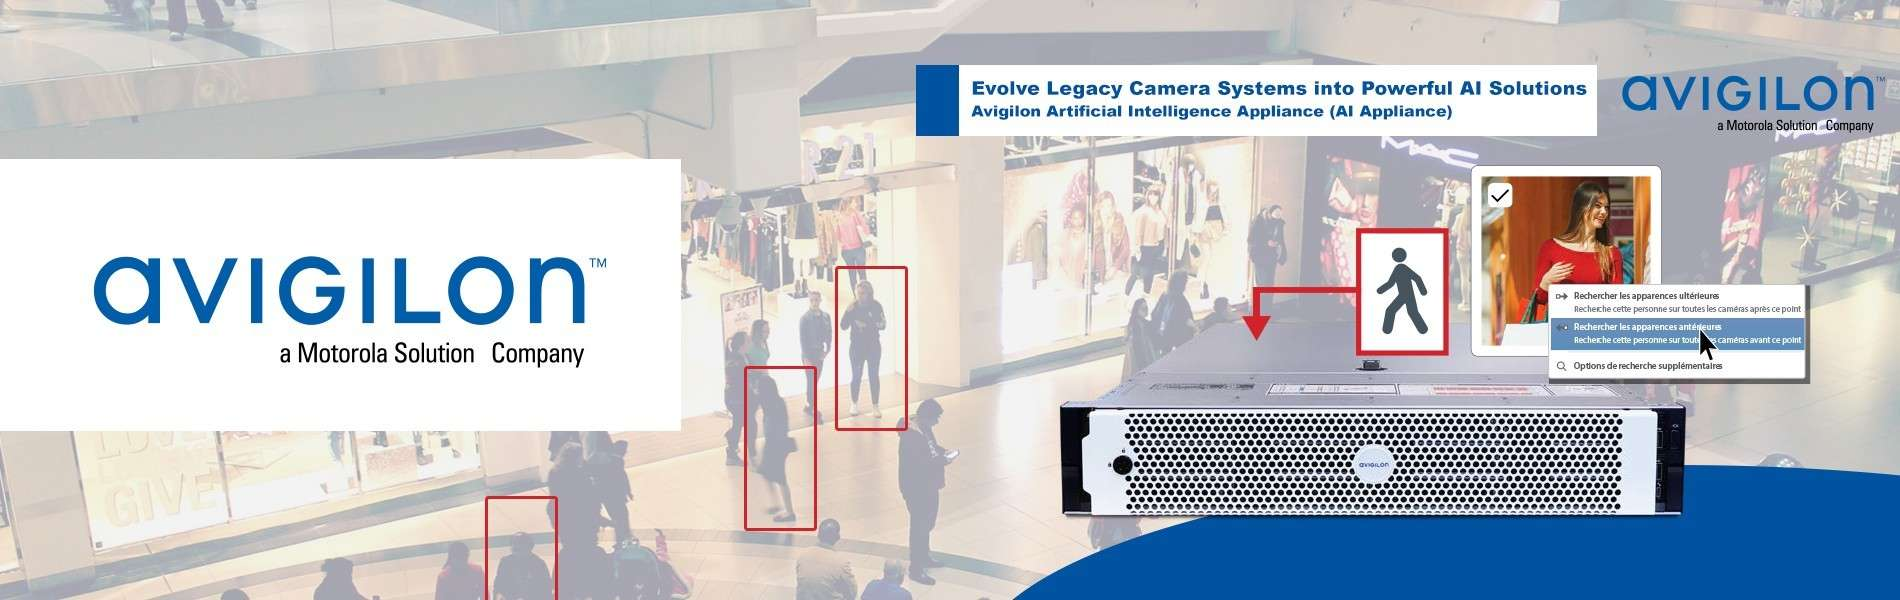 Dispositif AI Appliance d'Avigilon